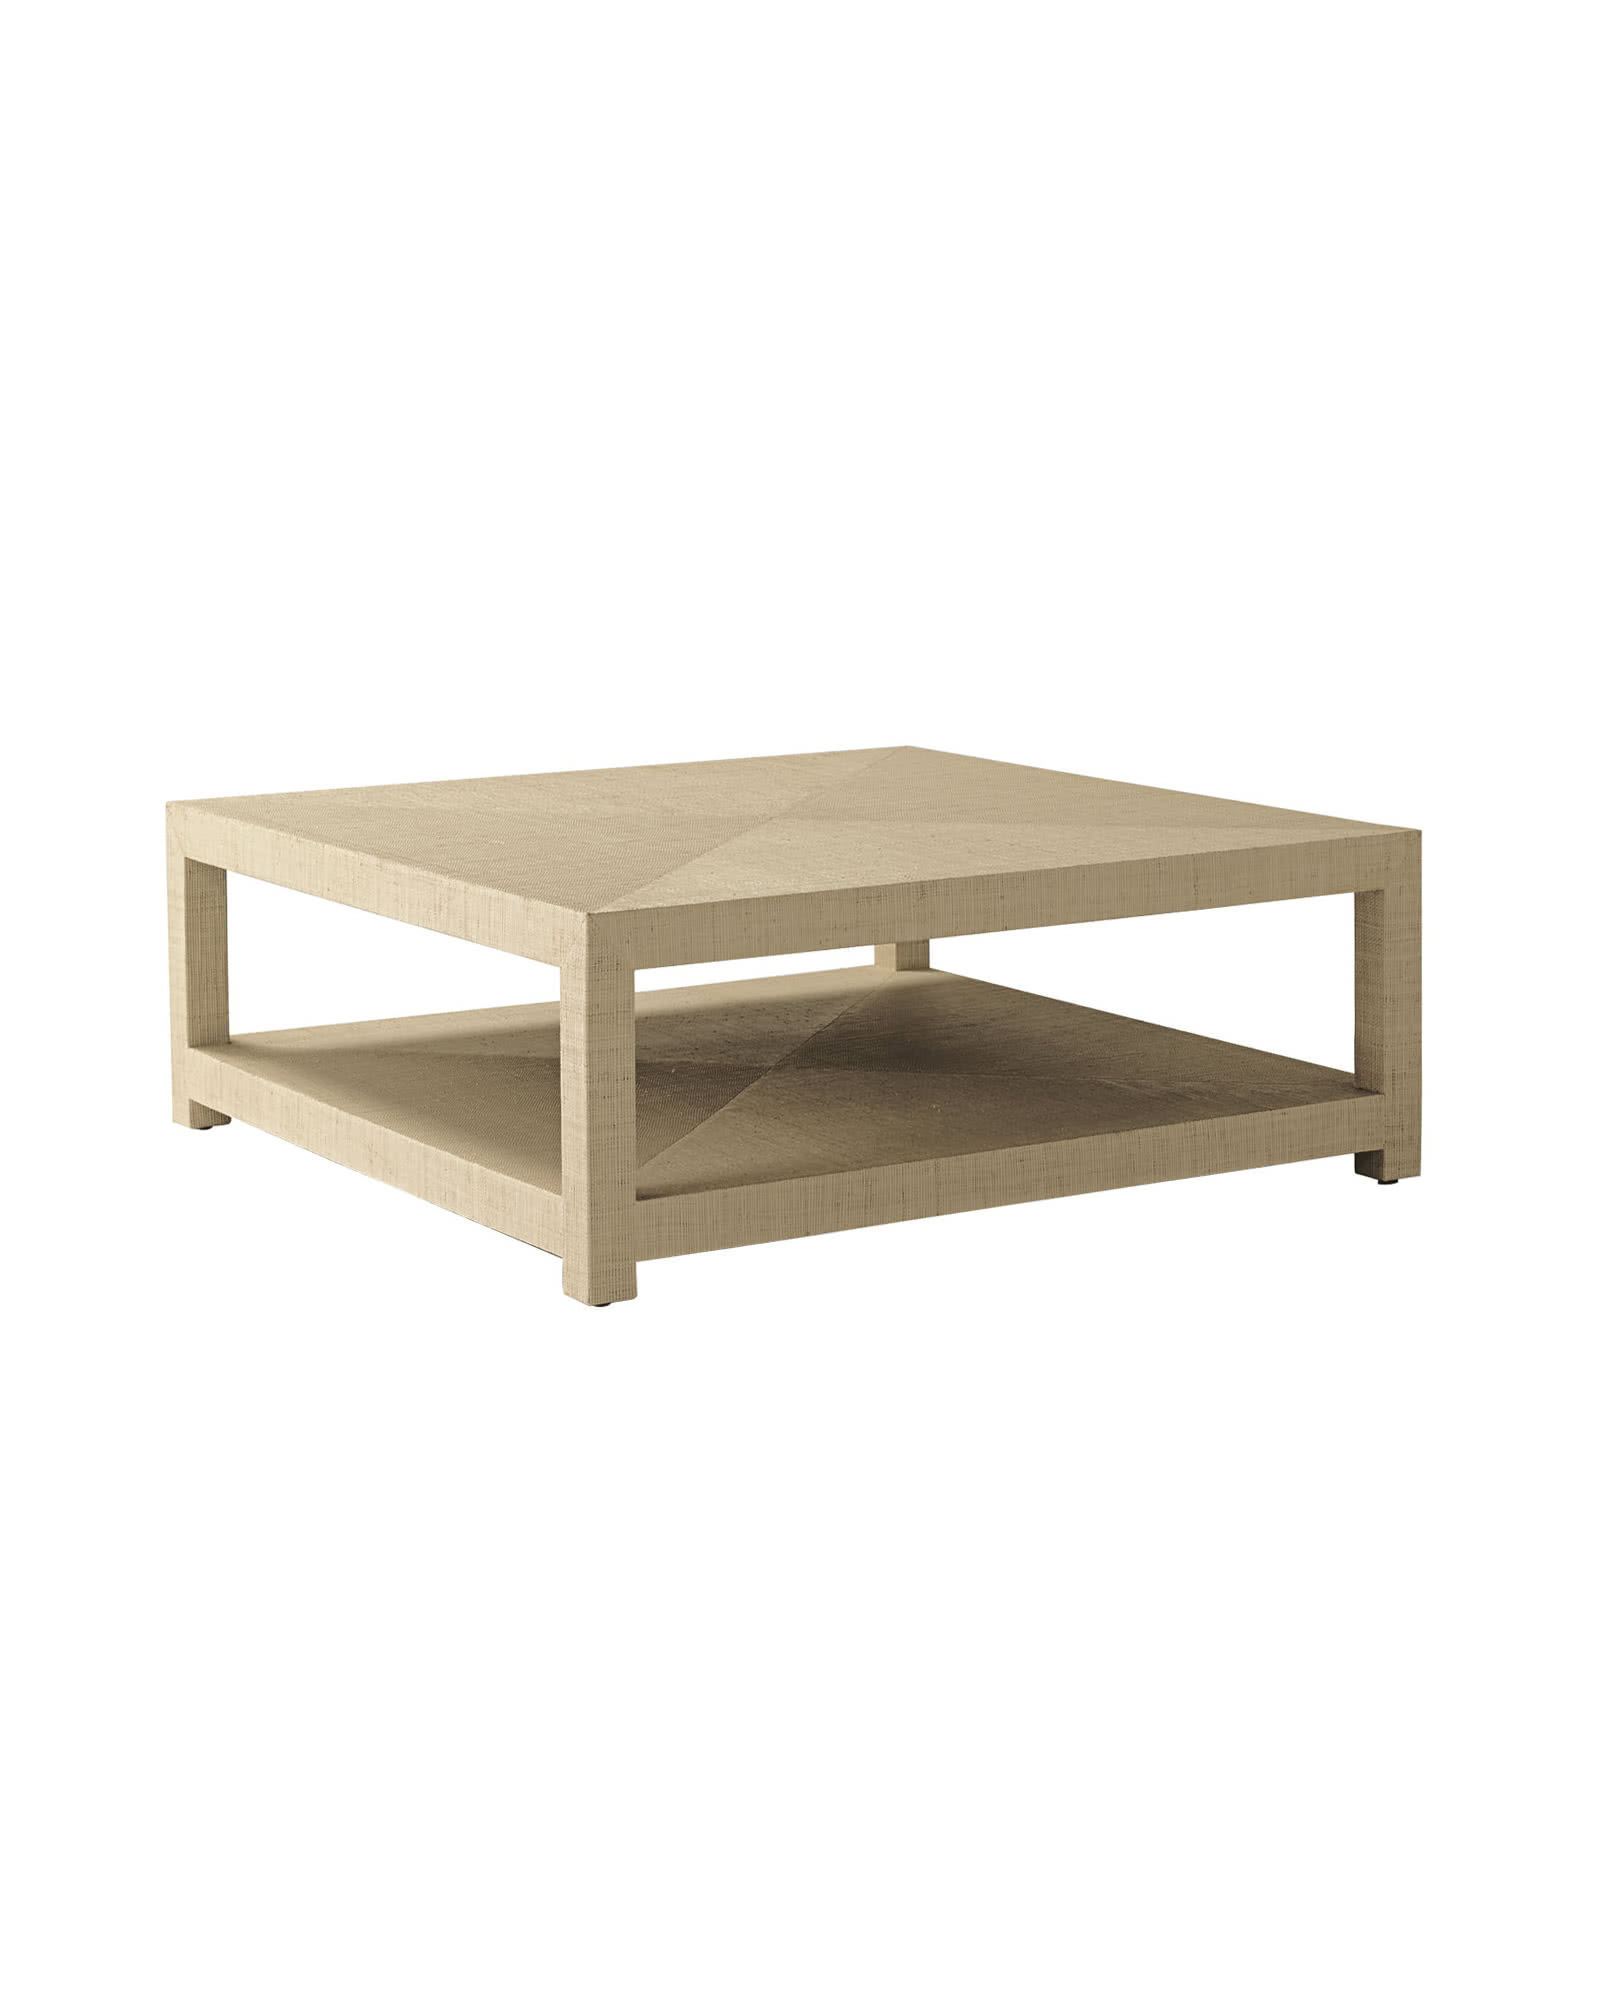 Blake Square Coffee Table, Natural